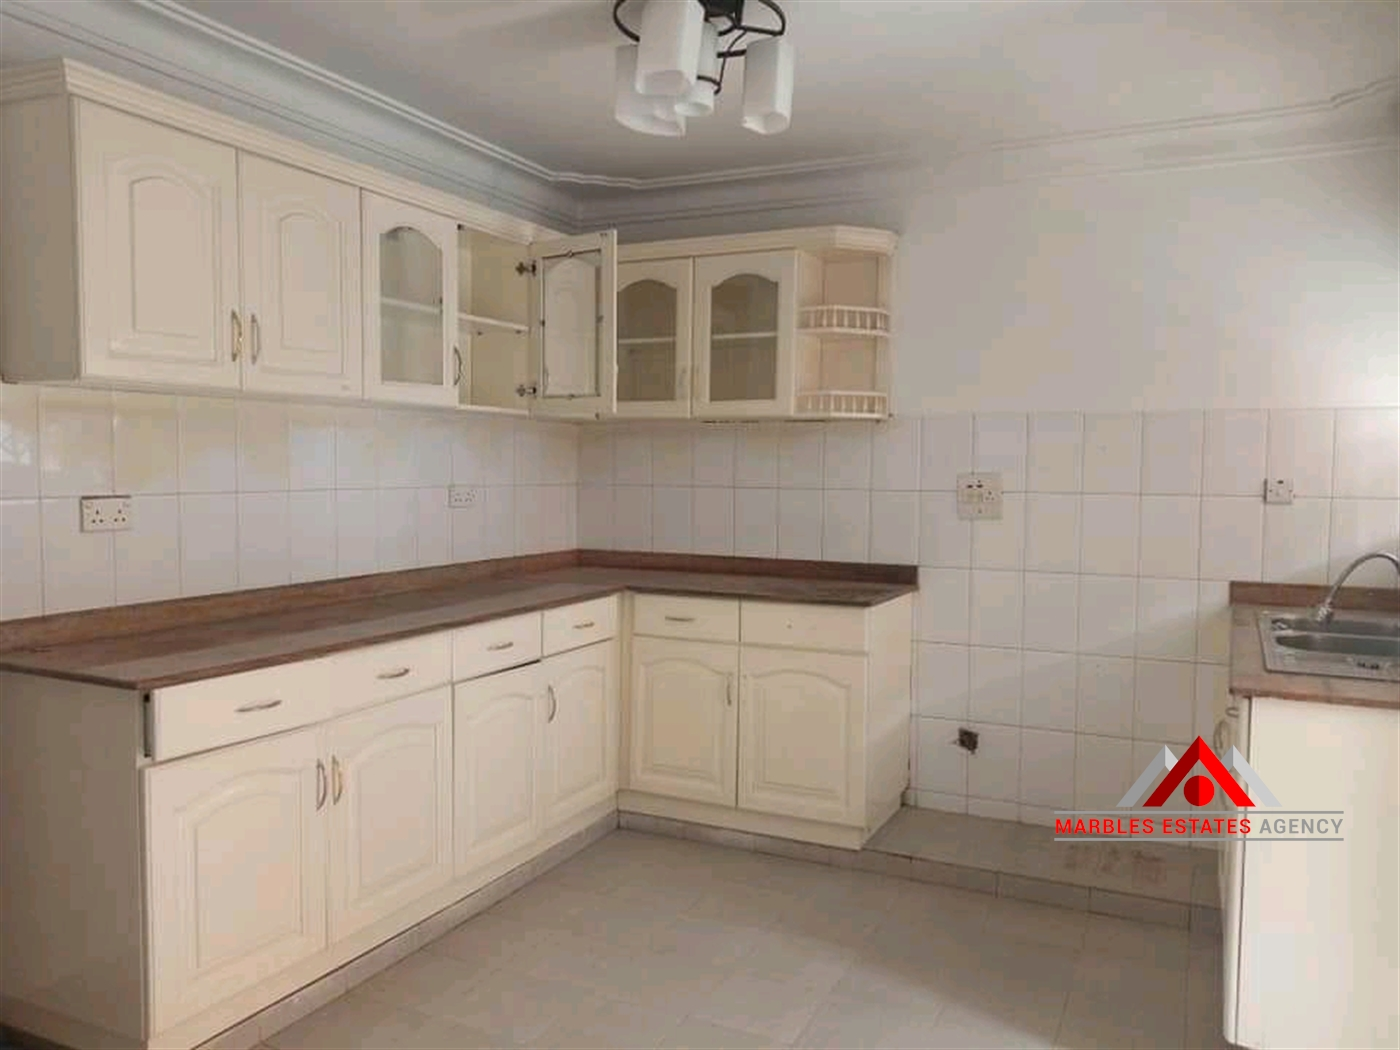 Semi Detached for rent in Bugolobi Kampala